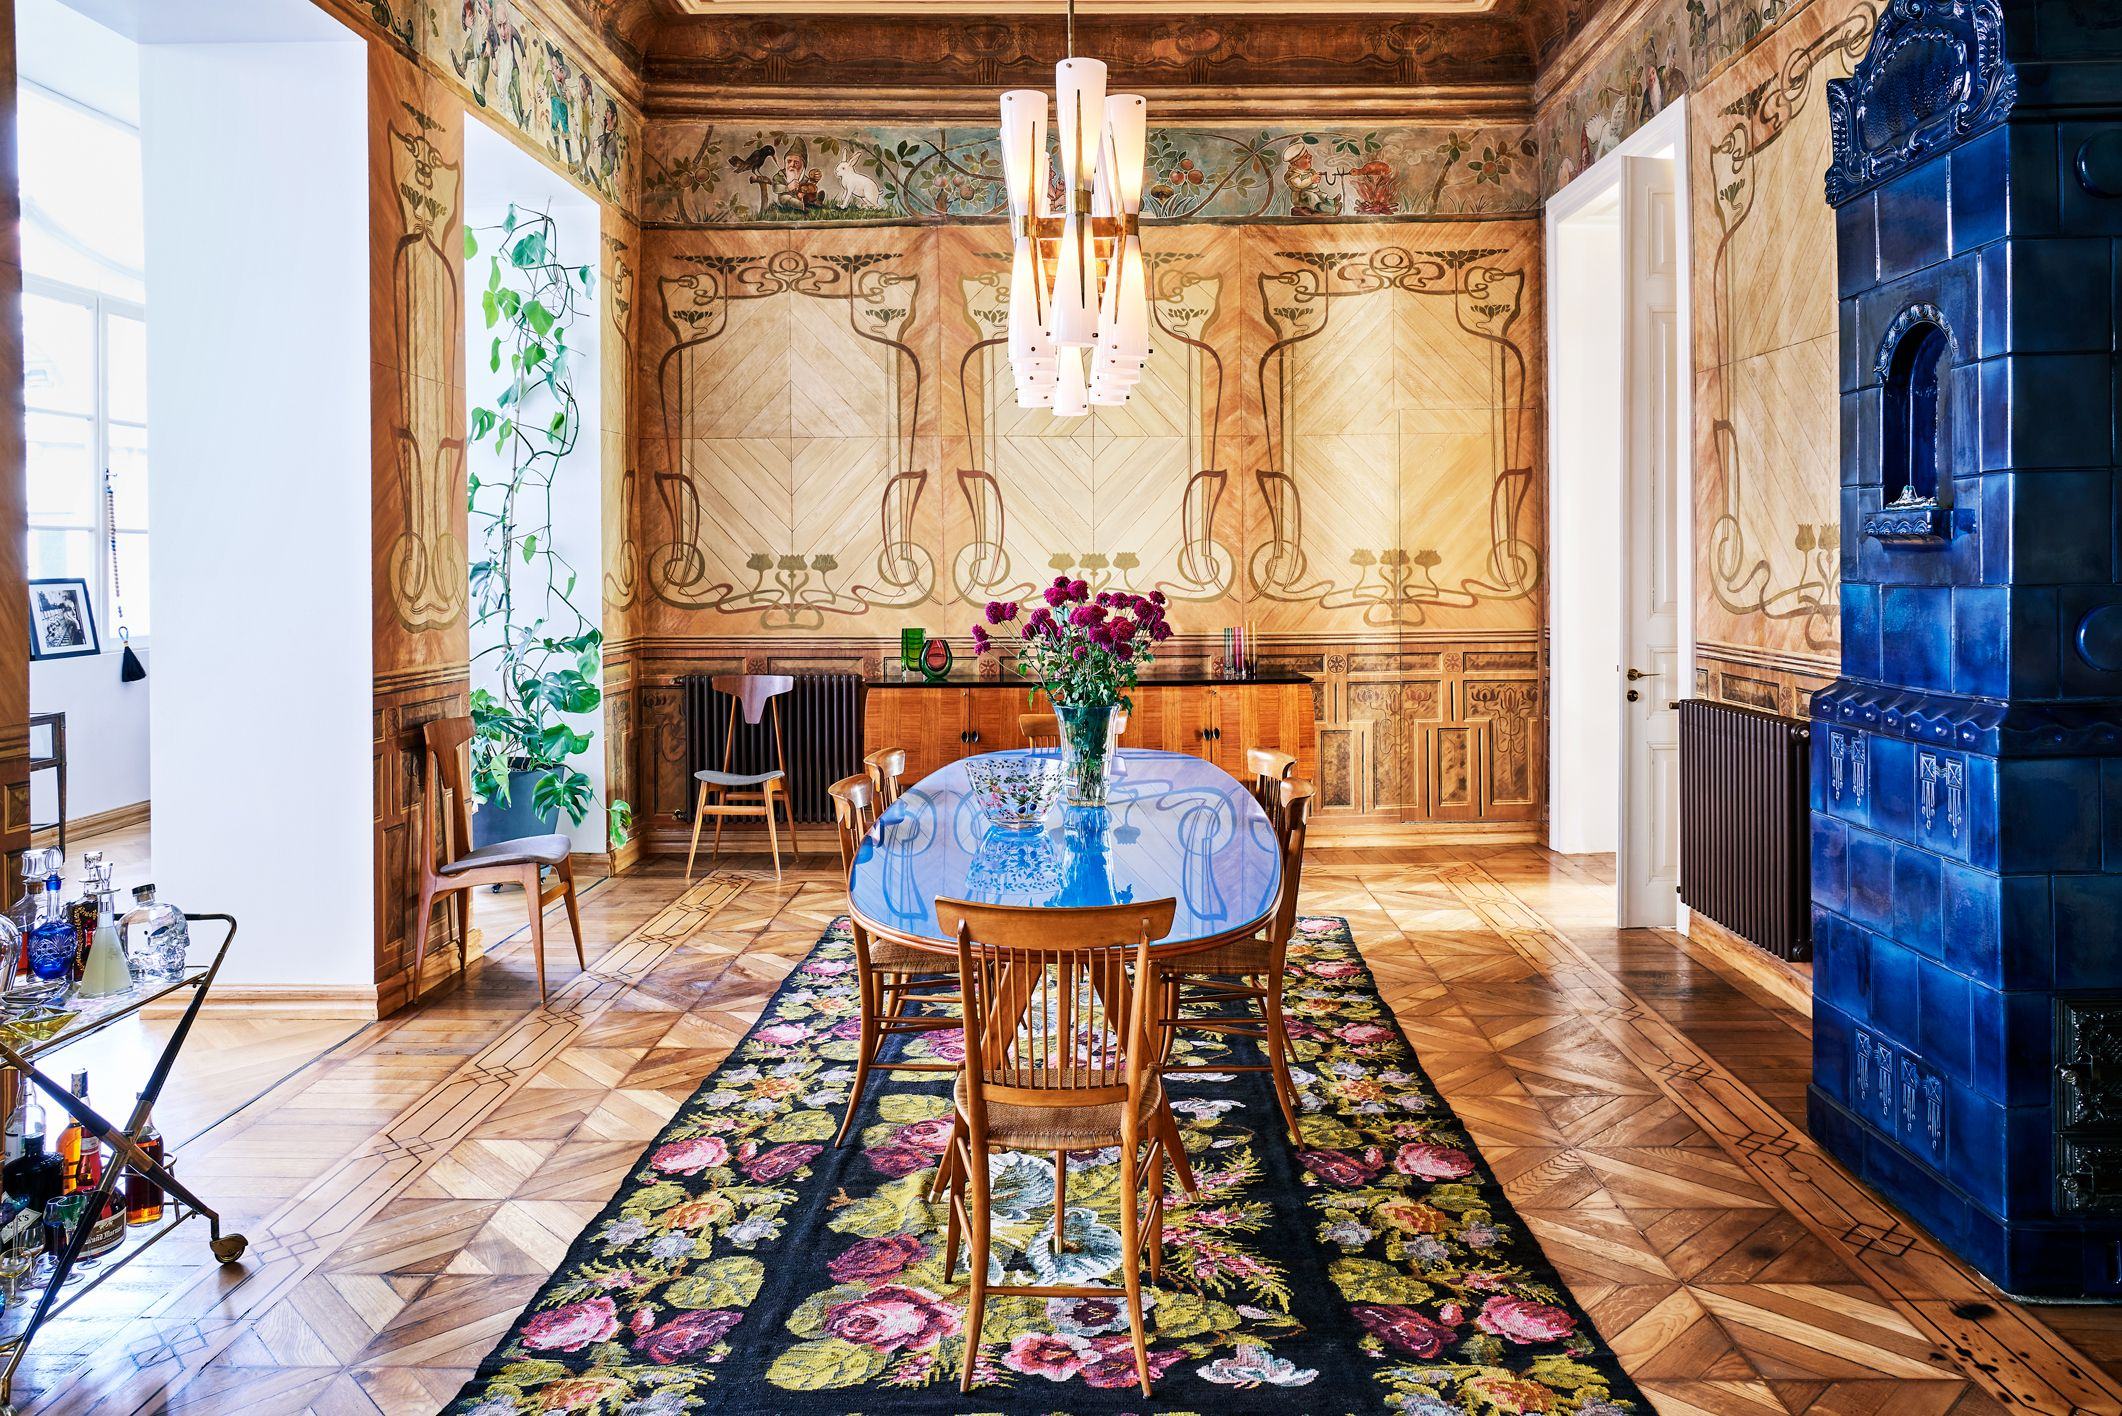 A Native Daughter of Tbilisi Turns an Art Nouveau Gem Into a Showpiece Home